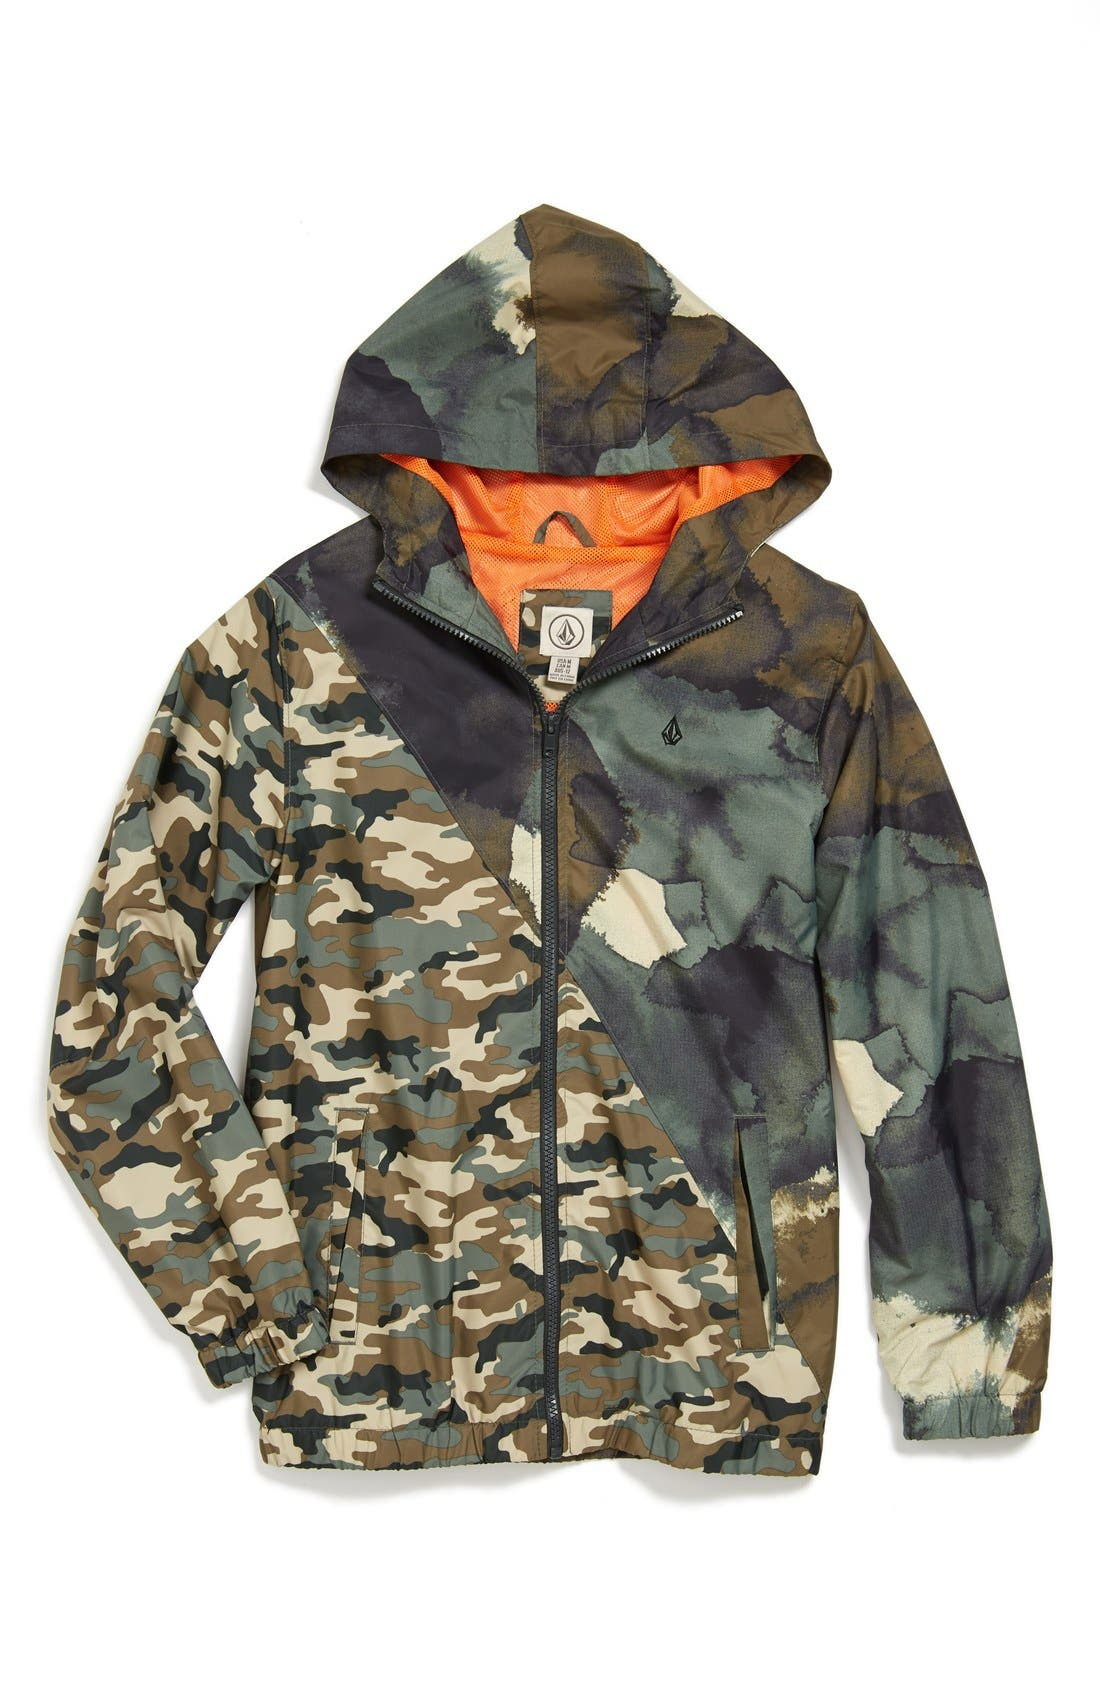 Alternate Image 1 Selected - Volcom 'Forwarder' Mixed Camo Jacket (Big Boys)